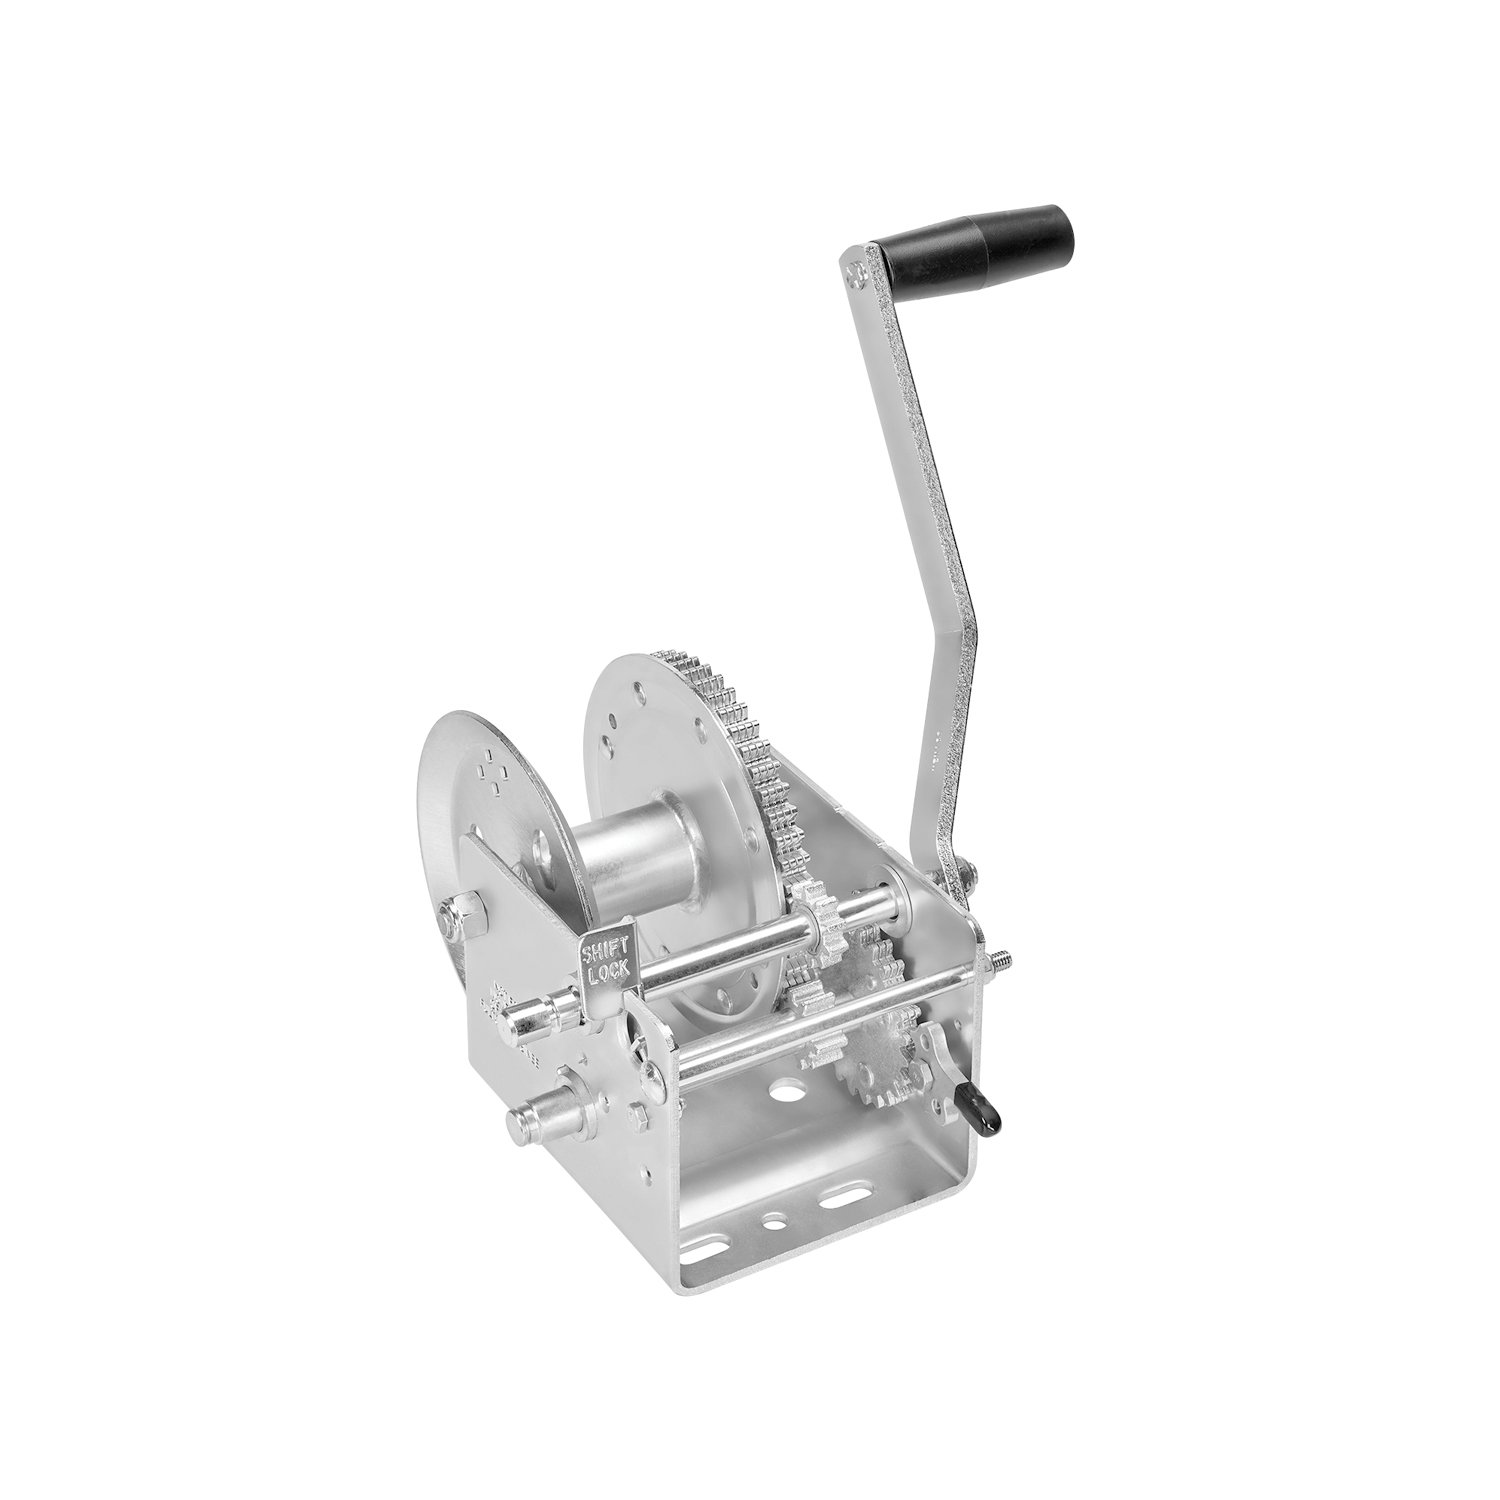 Fulton 142420 Dual Speed Winch - 3200 lbs. Capacity, 1 Pack